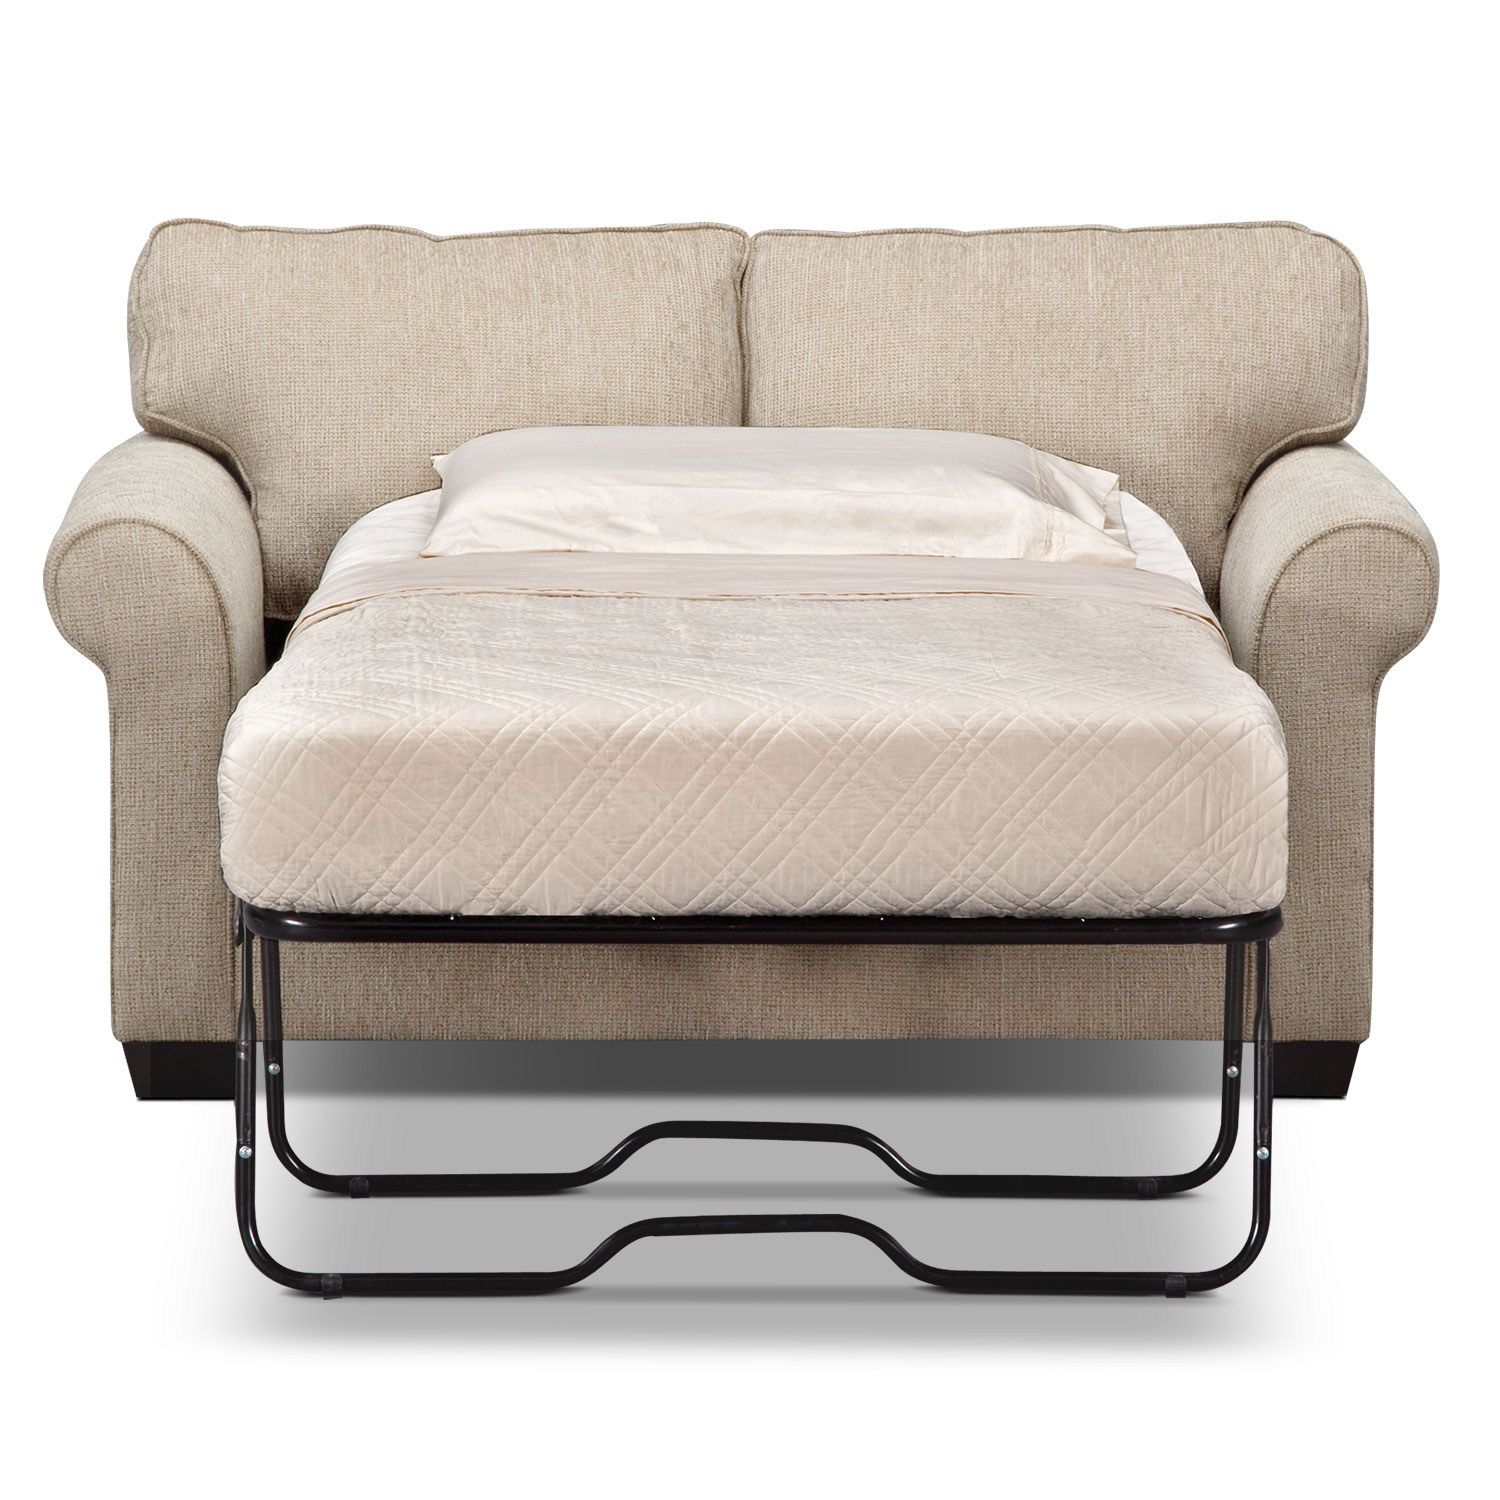 fascinating chaise sofa bed ideas-Top Chaise sofa Bed Decoration